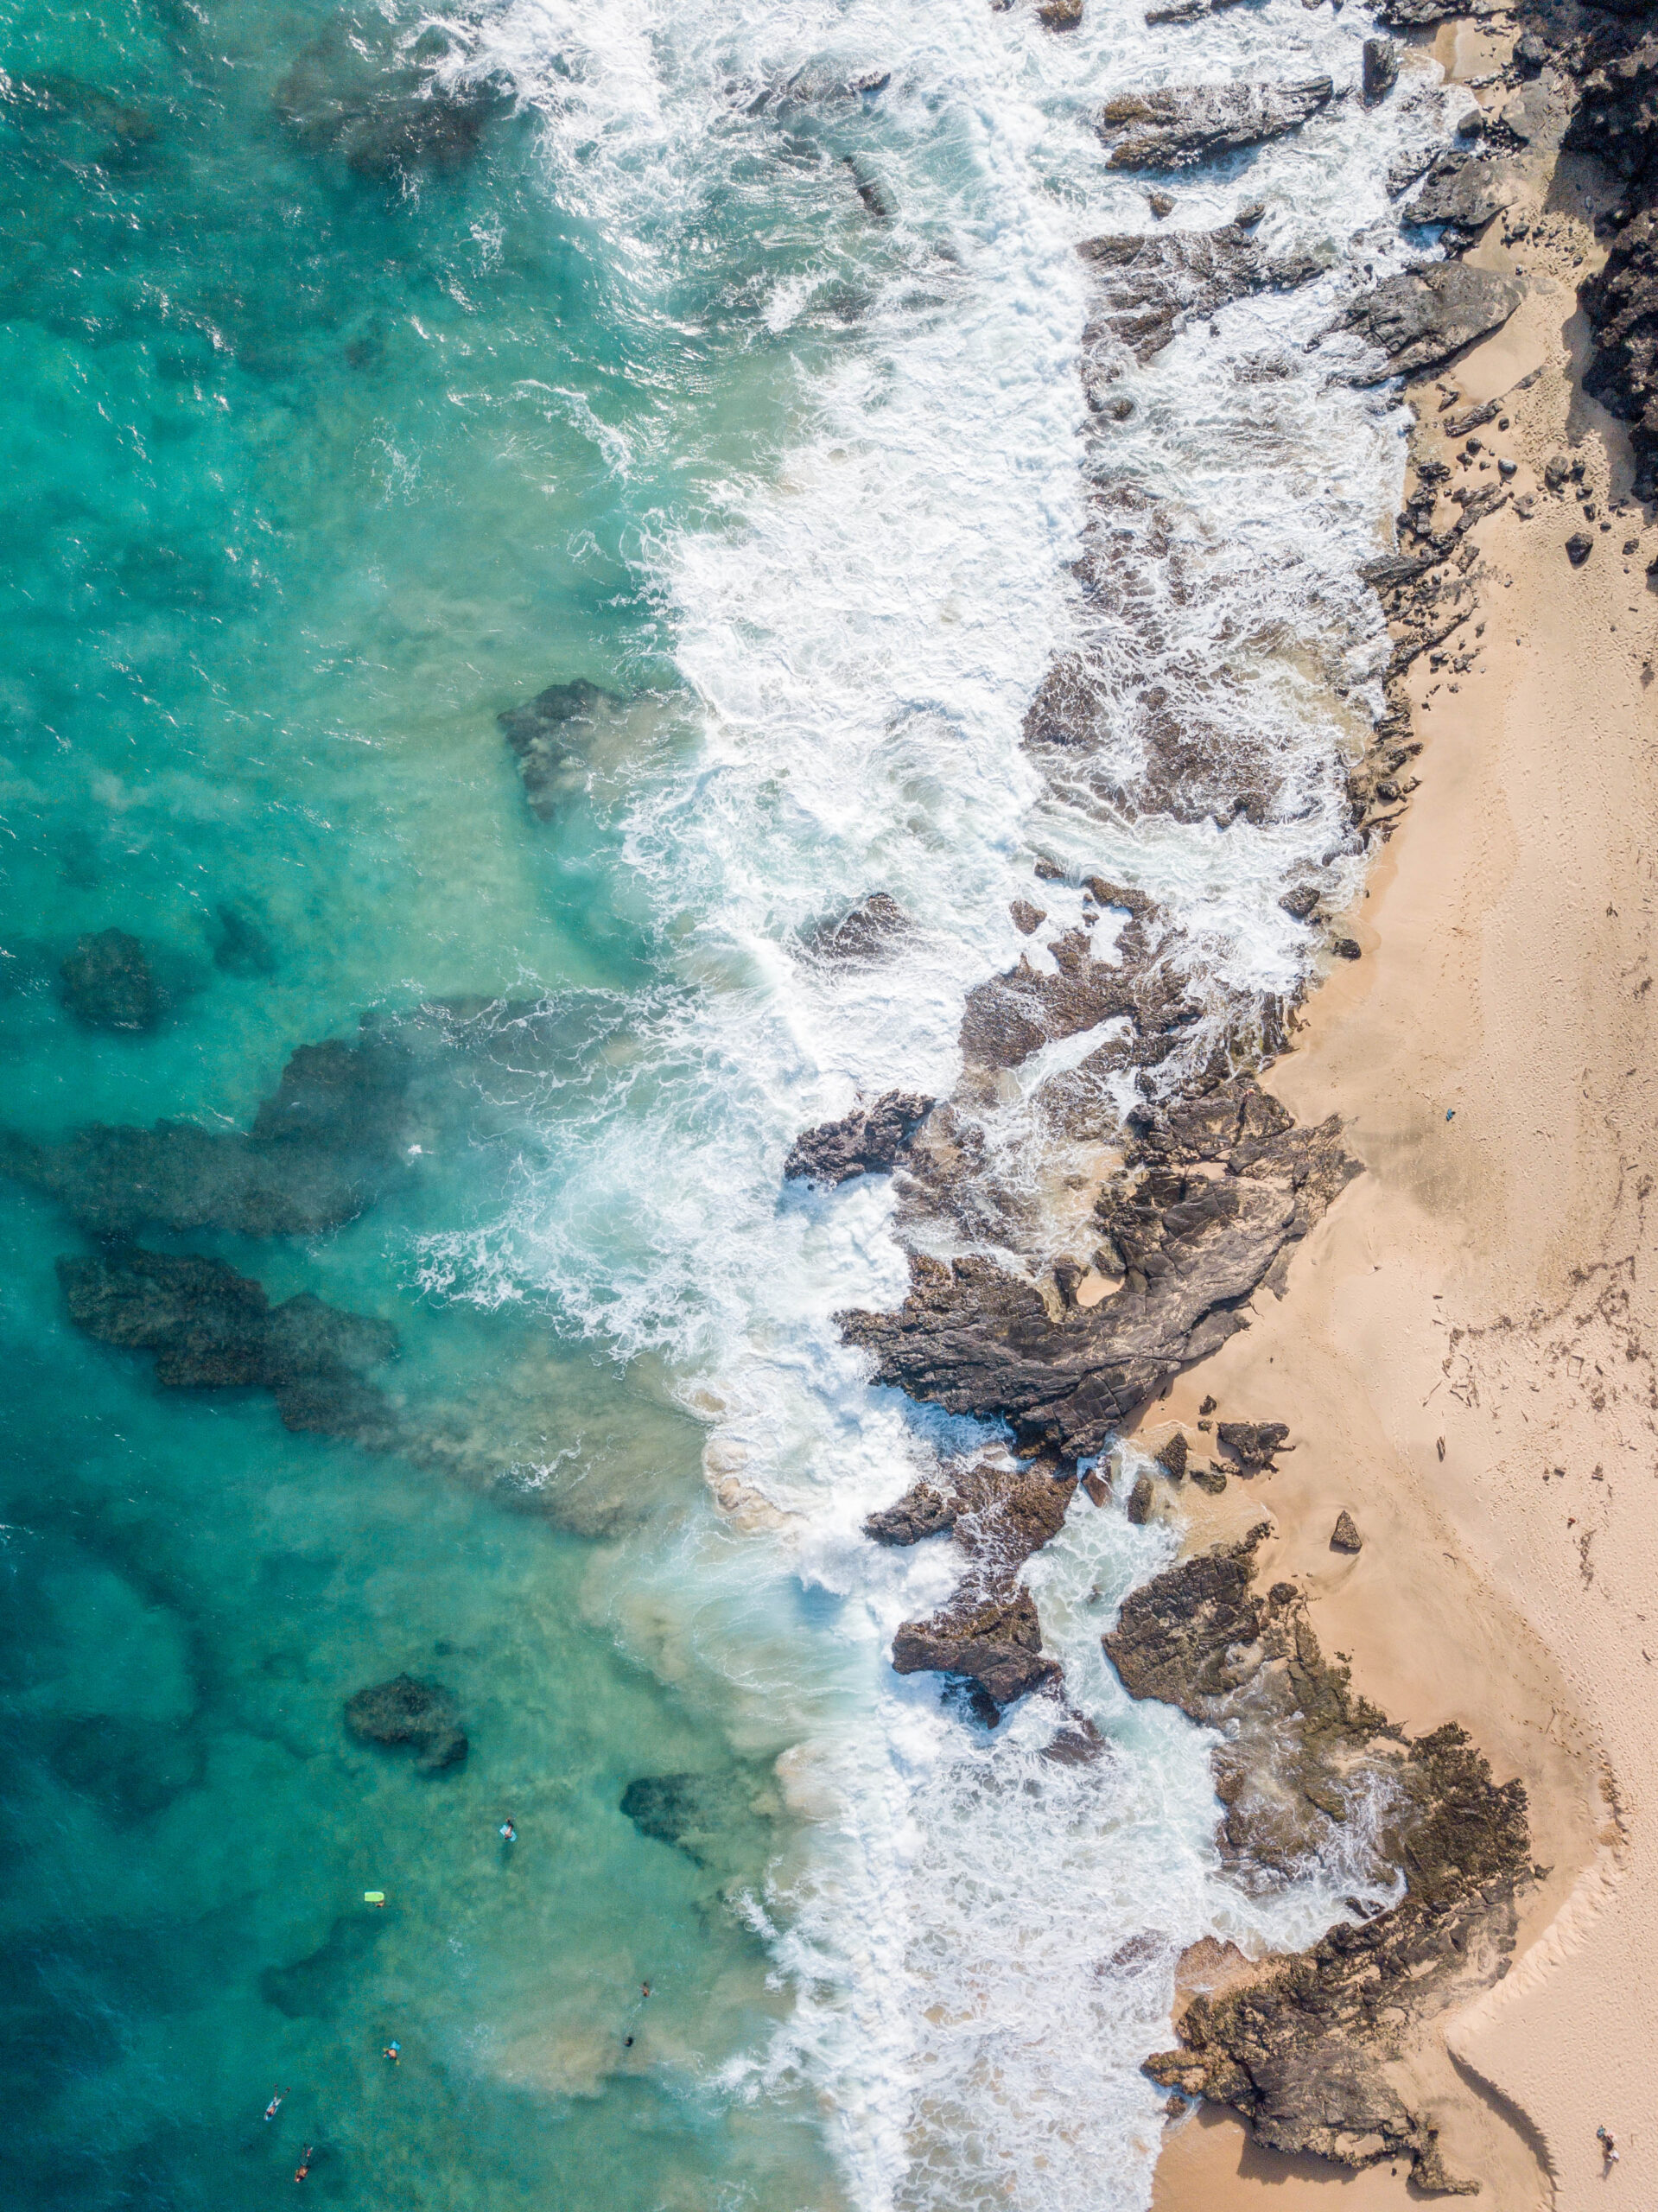 Hawaii Photos: South Shore Oahu - Dreaming of the Hawaiian Islands? Here are some Hawaii pictures of the south shore of Oahu to enjoy! | Oahu South Shore | Hawaii Pictures | Hawaii Beach | Hawaii Photos